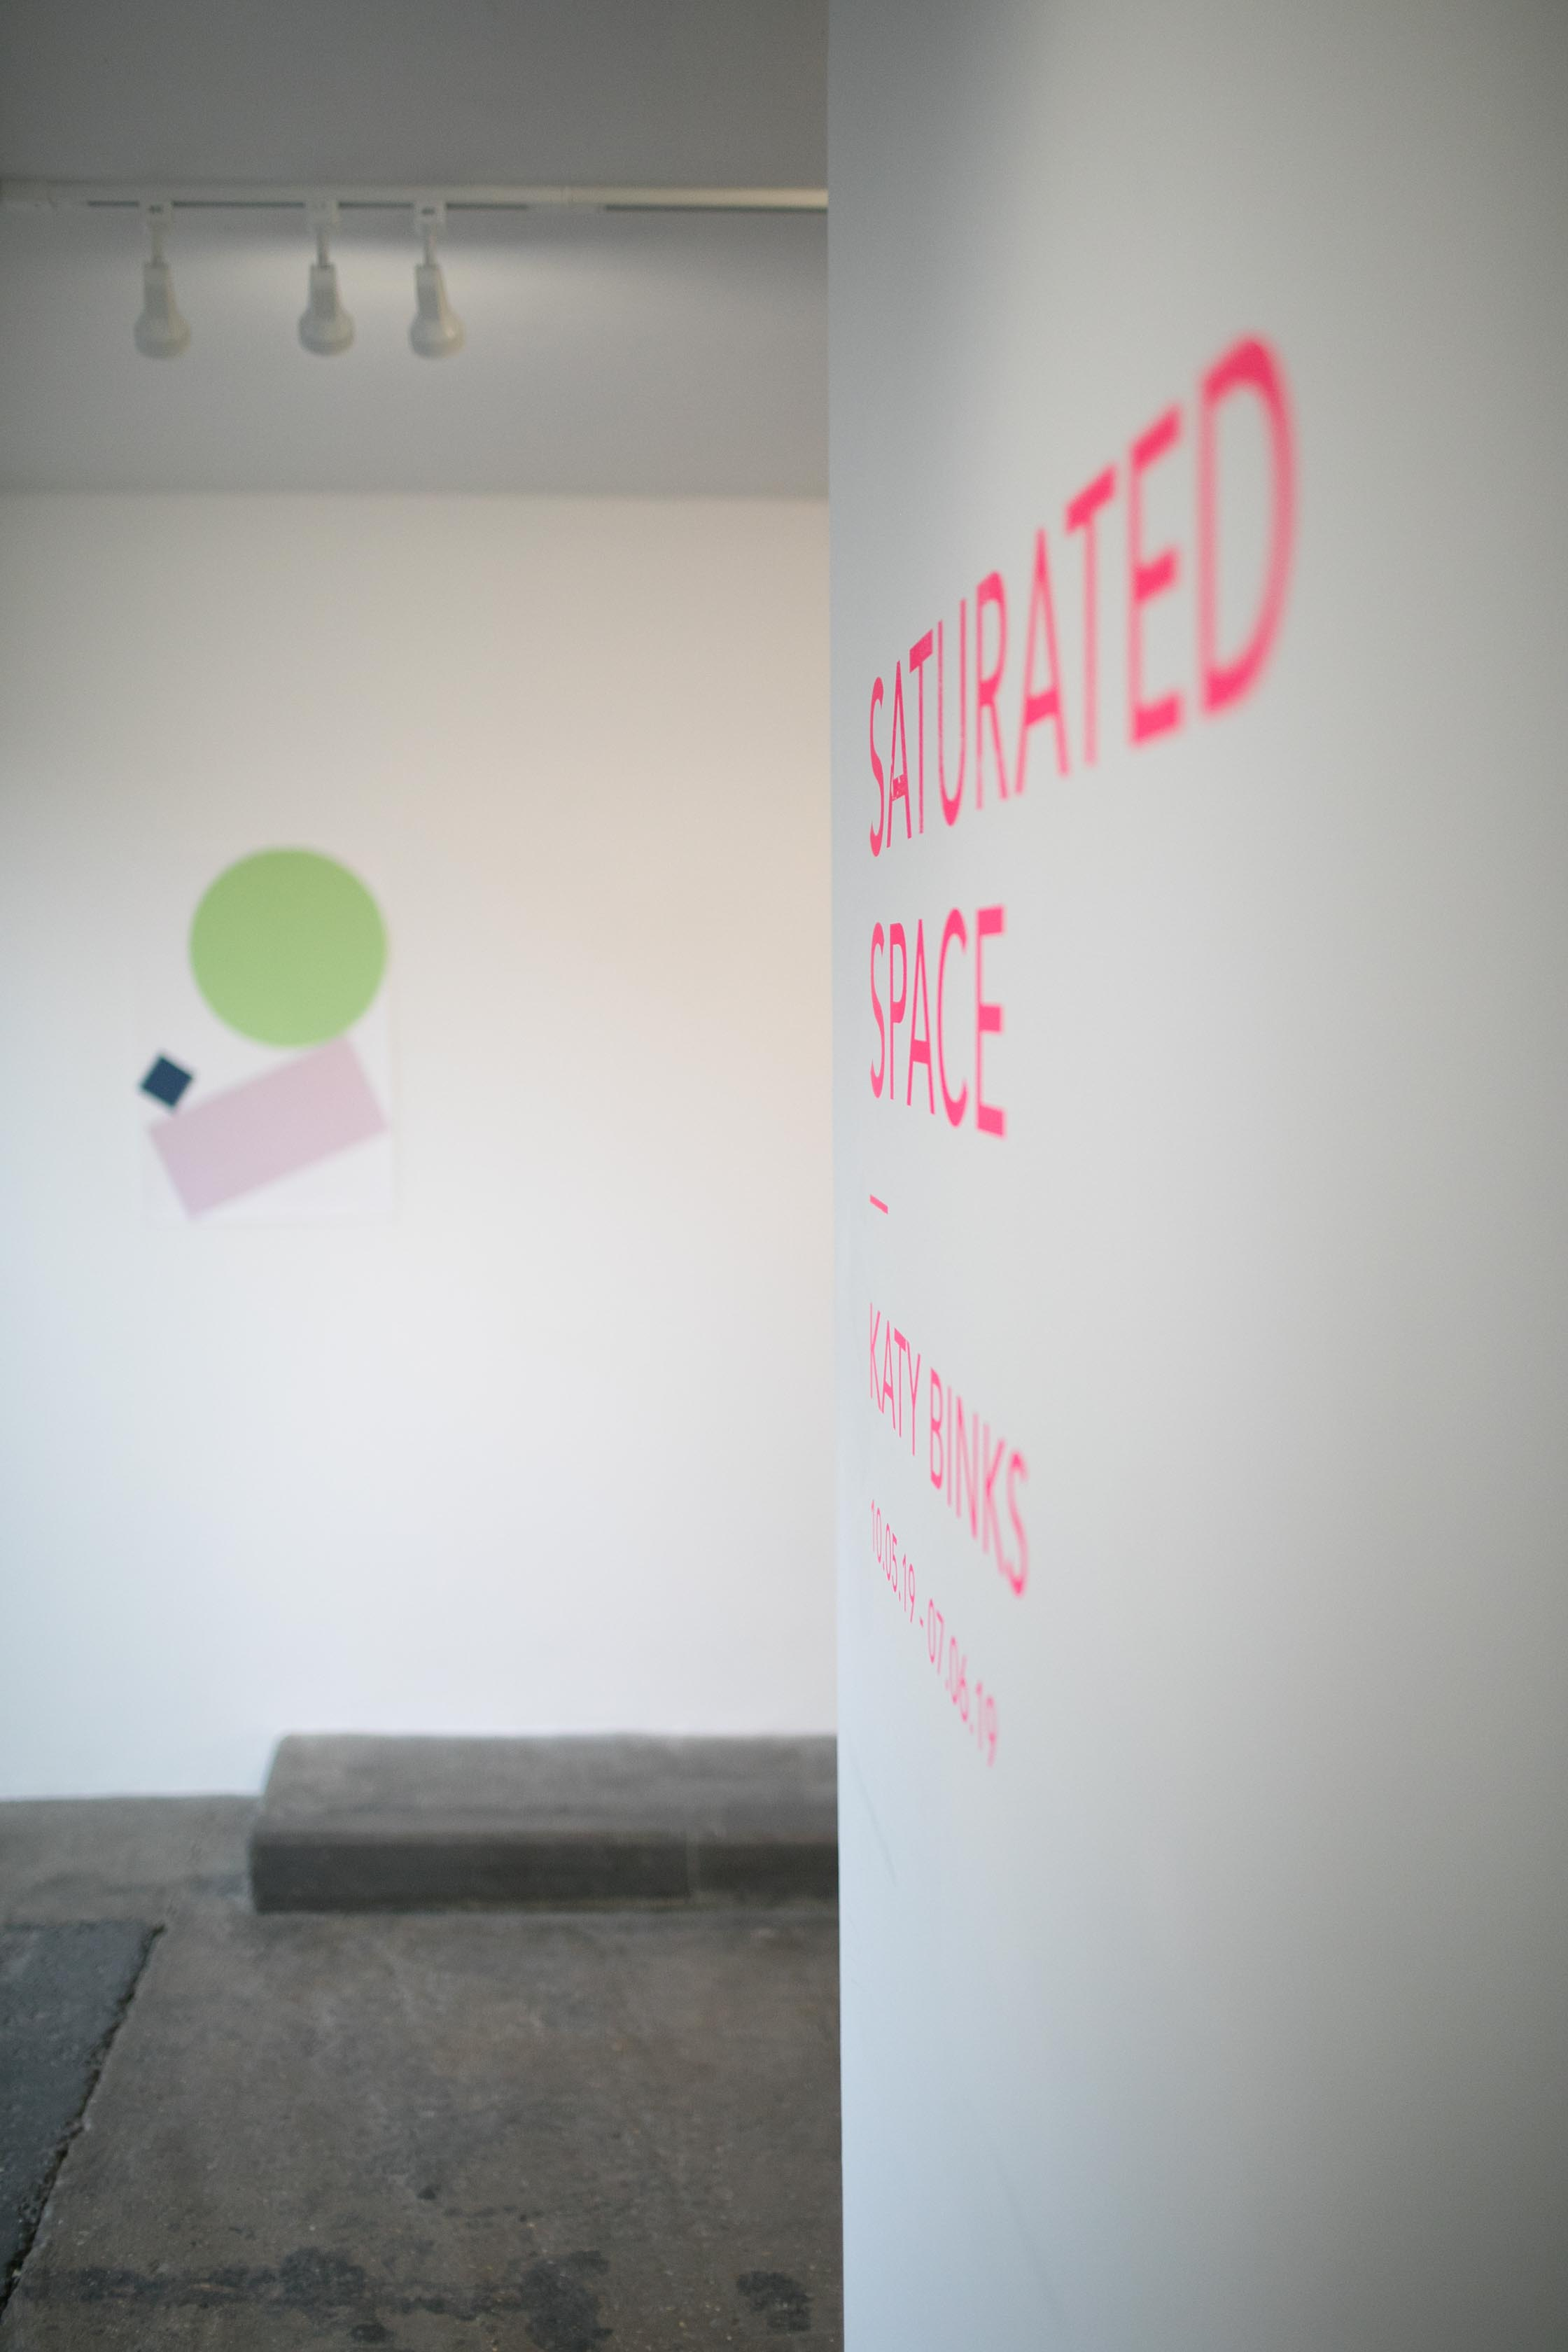 """Saturated Space - A dynamic installation of unique prints.ASC Gallery // 10.05.19 – 07.06.19PV 10.05.19 (6–9pm)In Saturated Space – her first UK solo show – Katy Binks presents a new collection of one-off, experimental screenprints in the form of a dynamic site specific intervention. Over the past year or so, Katy has been exploring a looser, more intuitive approach to printmaking. This new sense of freedom has invigorated her practice to such an extent that it now has more in common with painting than with edition-led printmaking.Saturated Space brings together a series of around fifty large abstract screenprints, which Katy has """"pasted on the walls billboard style… I wanted to create an installation that verges on overwhelming; quite in your face, but also with a stripped back graphic sensibility."""" The billboard mention hints at a background in graphic arts, with elements such as half-tone textures and hard graphic shapes referencing the visual landscape of commercial printing and outdoor advertising.The individual prints in the show are all unique, but there's an aesthetic thread linking them all. I might start with a stripe or a halftone dot image, but I'll try and keep things different by using paper stencils or monoprint techniques… As the number of prints grew I naturally started to place them together and look for links."""" It's an approach that embraces positive and negative space, placing equal importance on both the printed and unprinted surface. """"I'm always building images, using multiples or one-off prints so I can make something even larger. It's playful, placing things side by side to find a flow and rhythm from one image to the next."""" Her approach to colour is also intuitive. """"I have a colour palette that I can't escape, but in these works I've been actively looking for those high contrast moments that happen when vibrant colours are anchored by strong blacks and dark blues.""""Her new prints also explore her ongoing fascination with the relationship betw"""